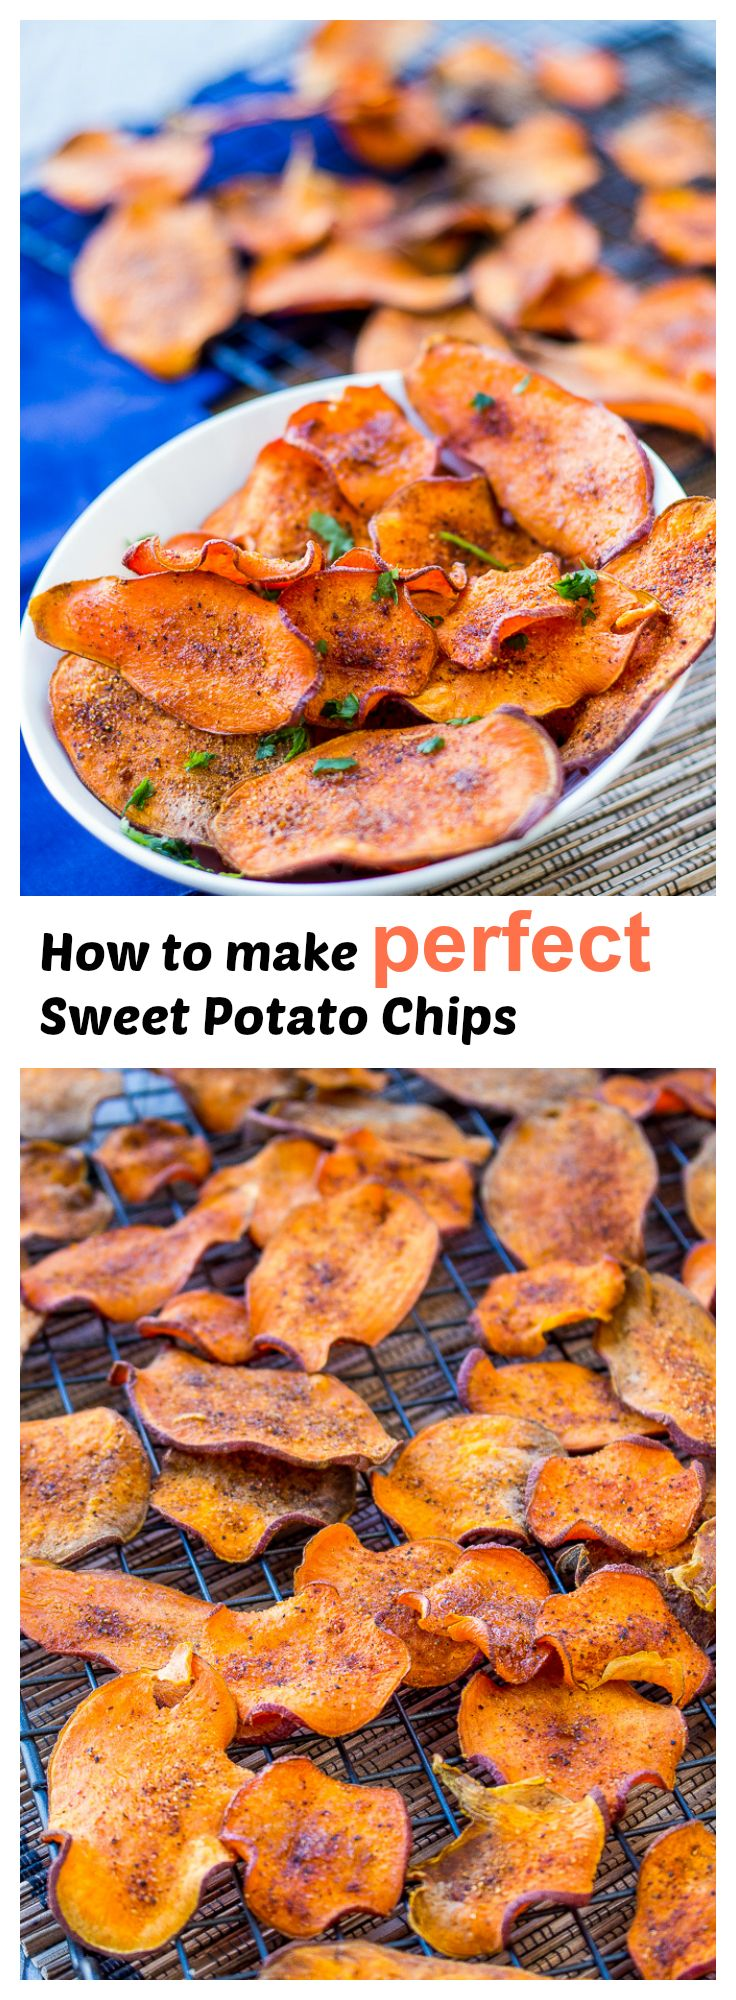 Tips and tricks for perfect sweet potato chips. Crispy, flavorful and guilt free…